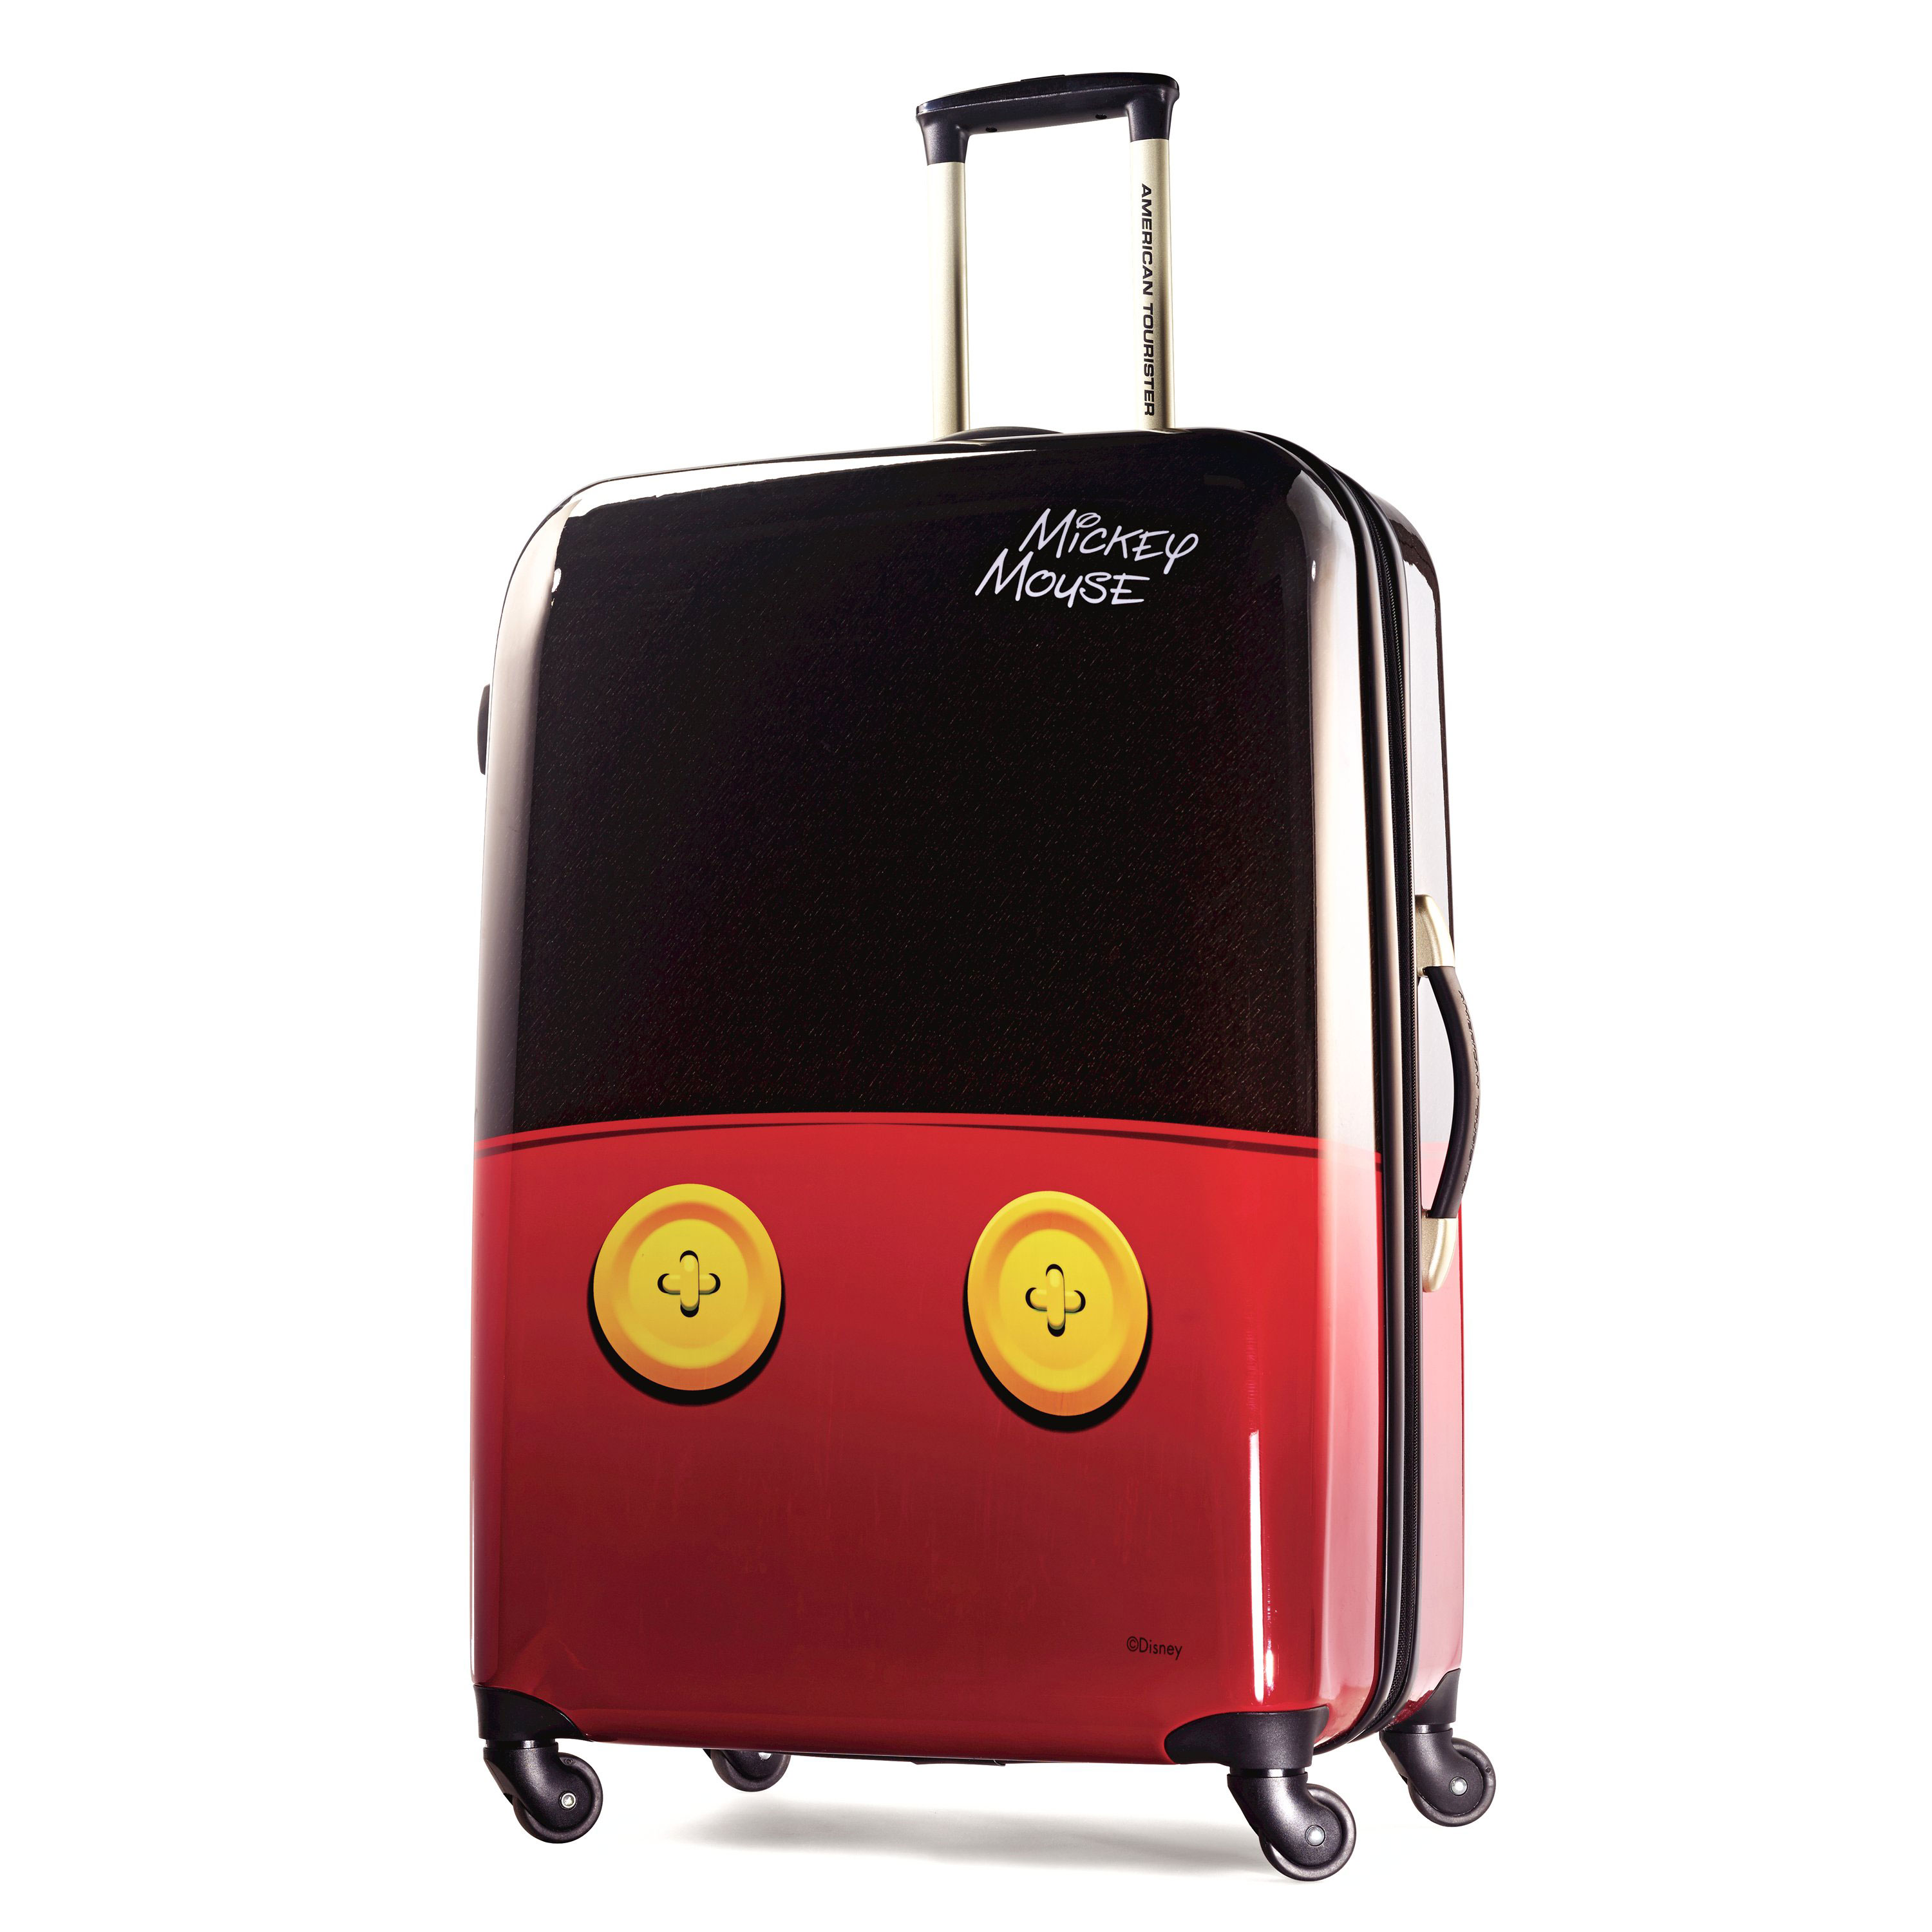 American-Tourister-Disney-Mickey-Mouse-Hardside-Spinner-Luggage thumbnail 6